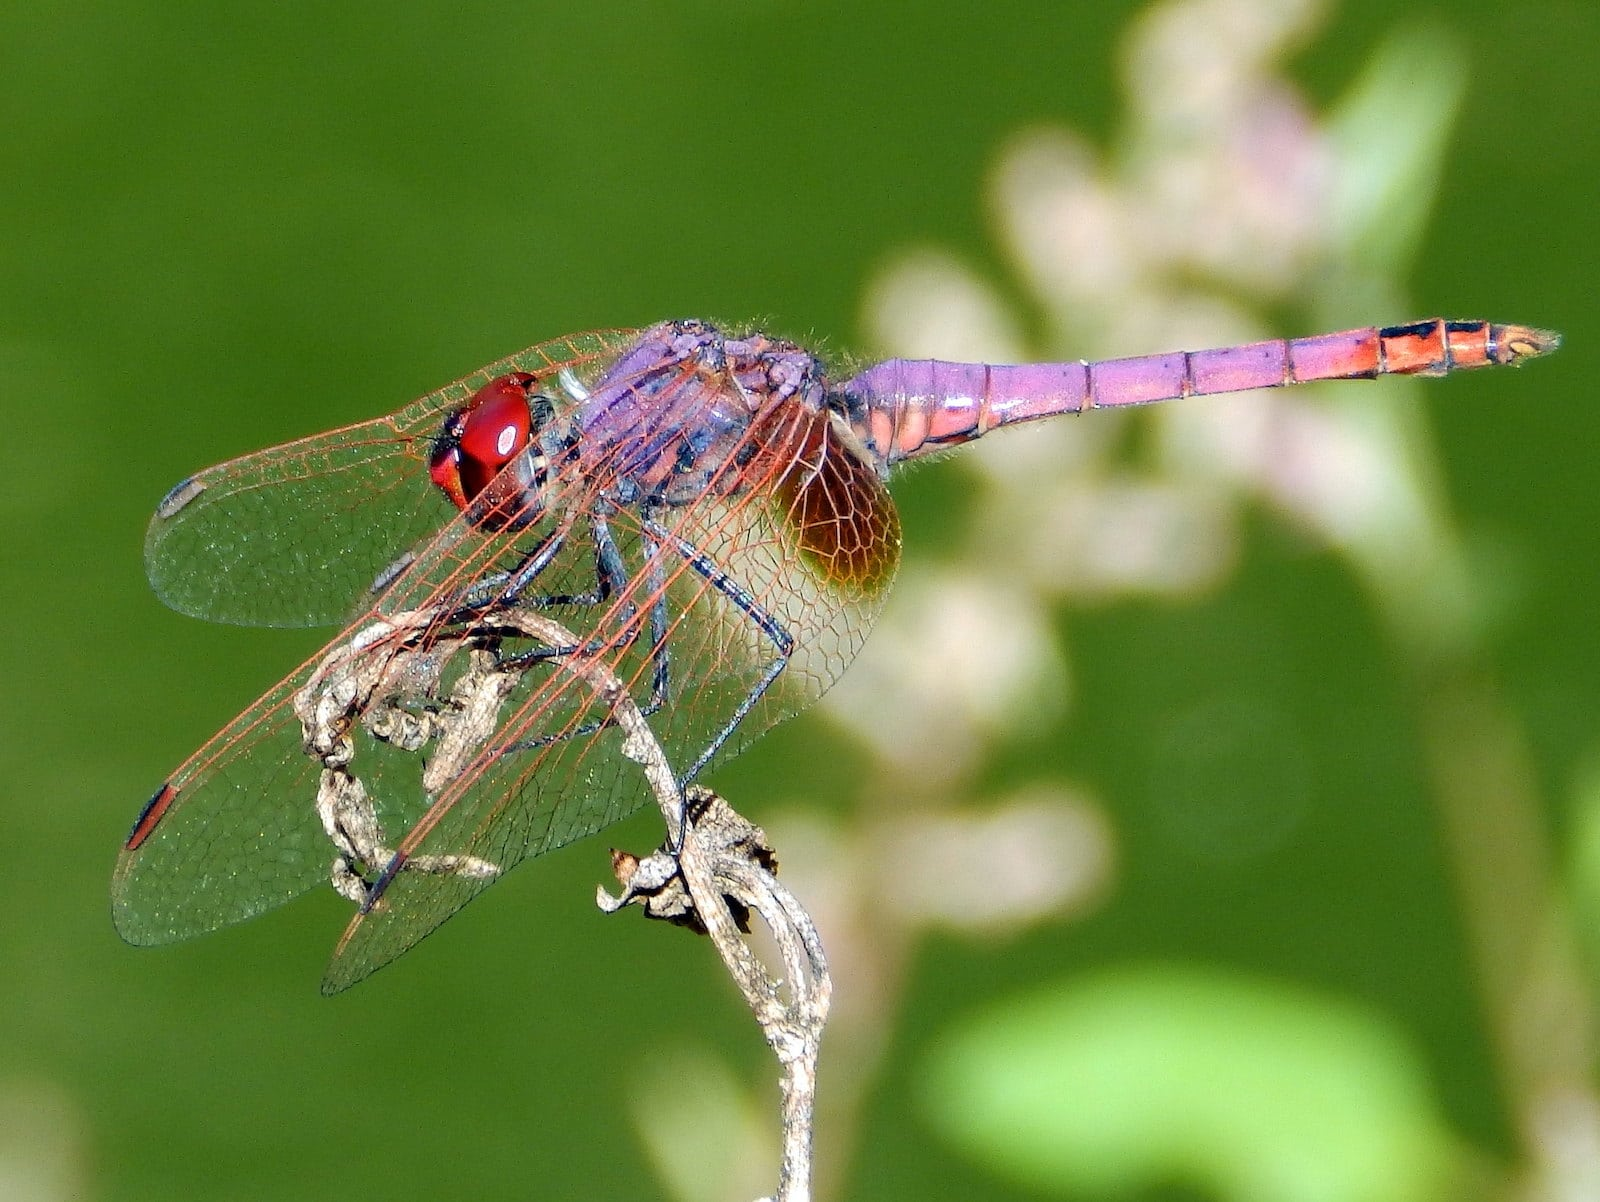 Image of a Violet Dropwing Dragonfly